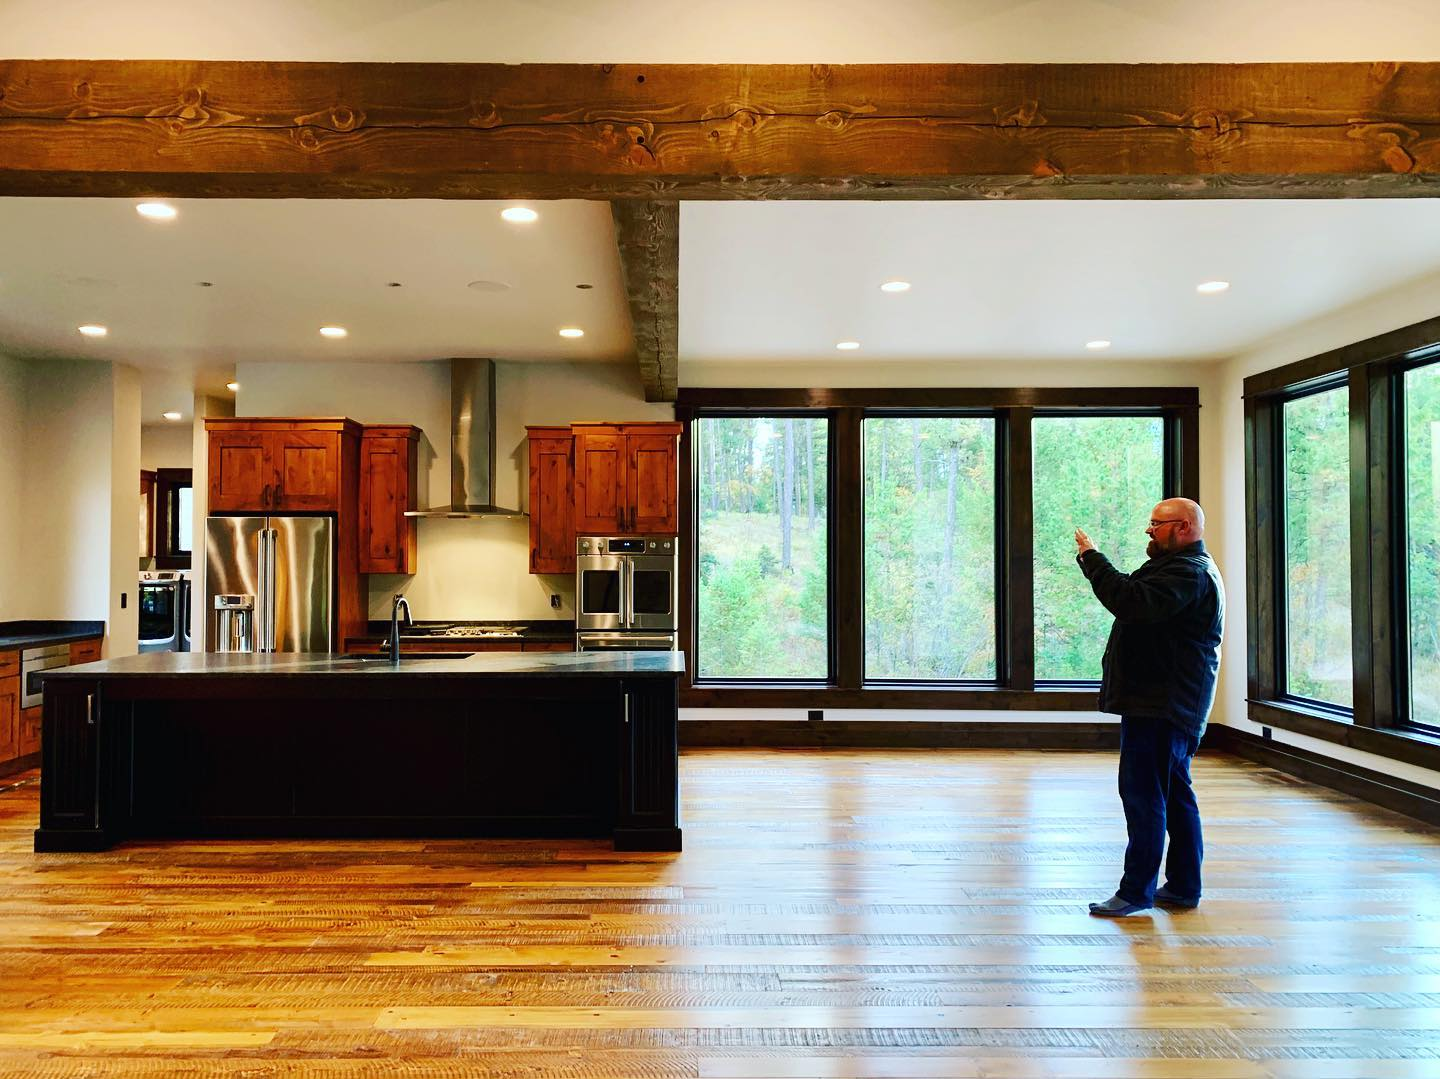 Bam  it is all coming together at Houser-mania! whitefish custom home builder